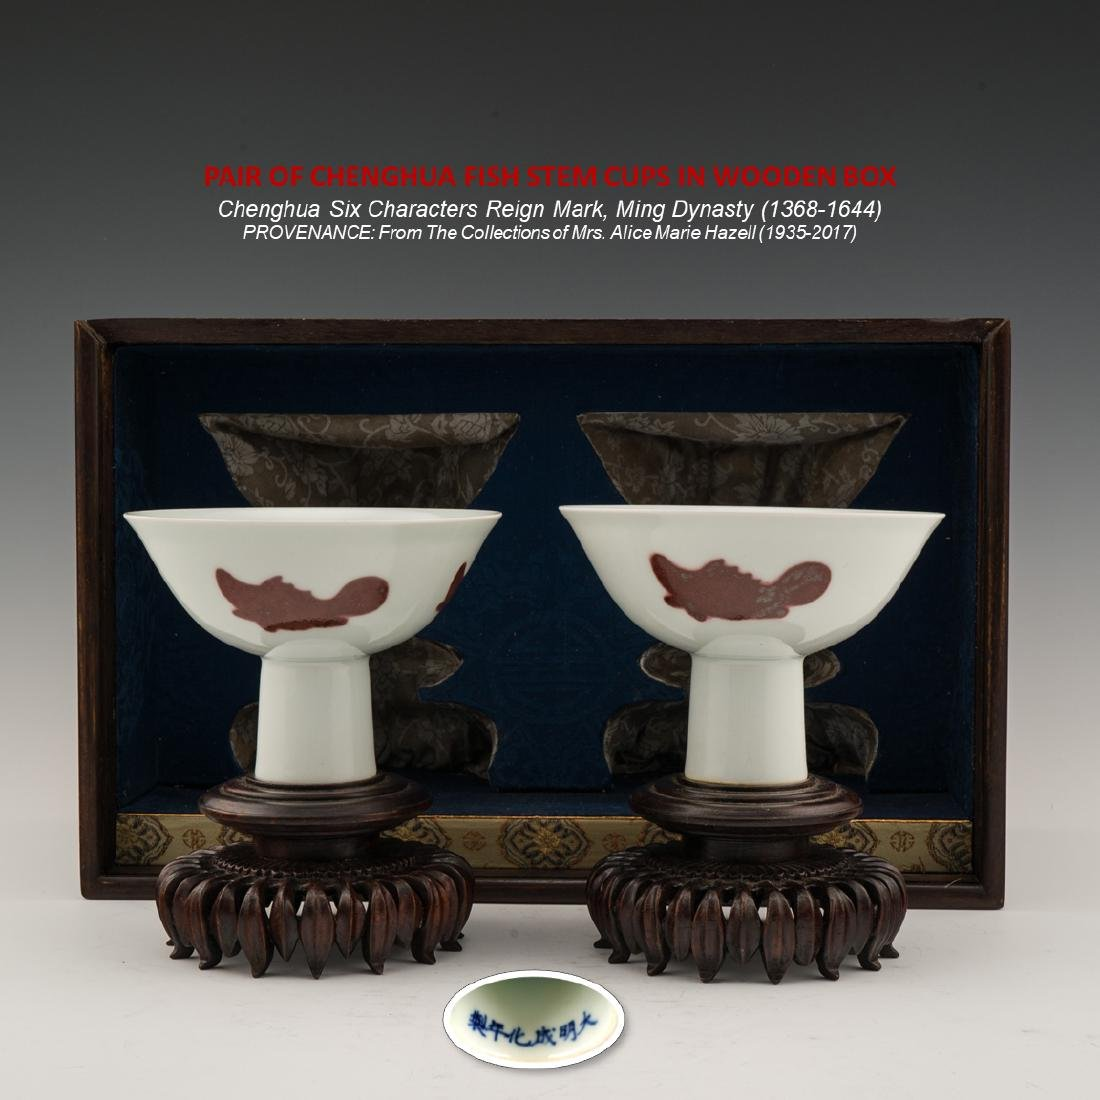 PAIR OF CHENGHUA FISH STEM CUPS IN WOODEN BOX